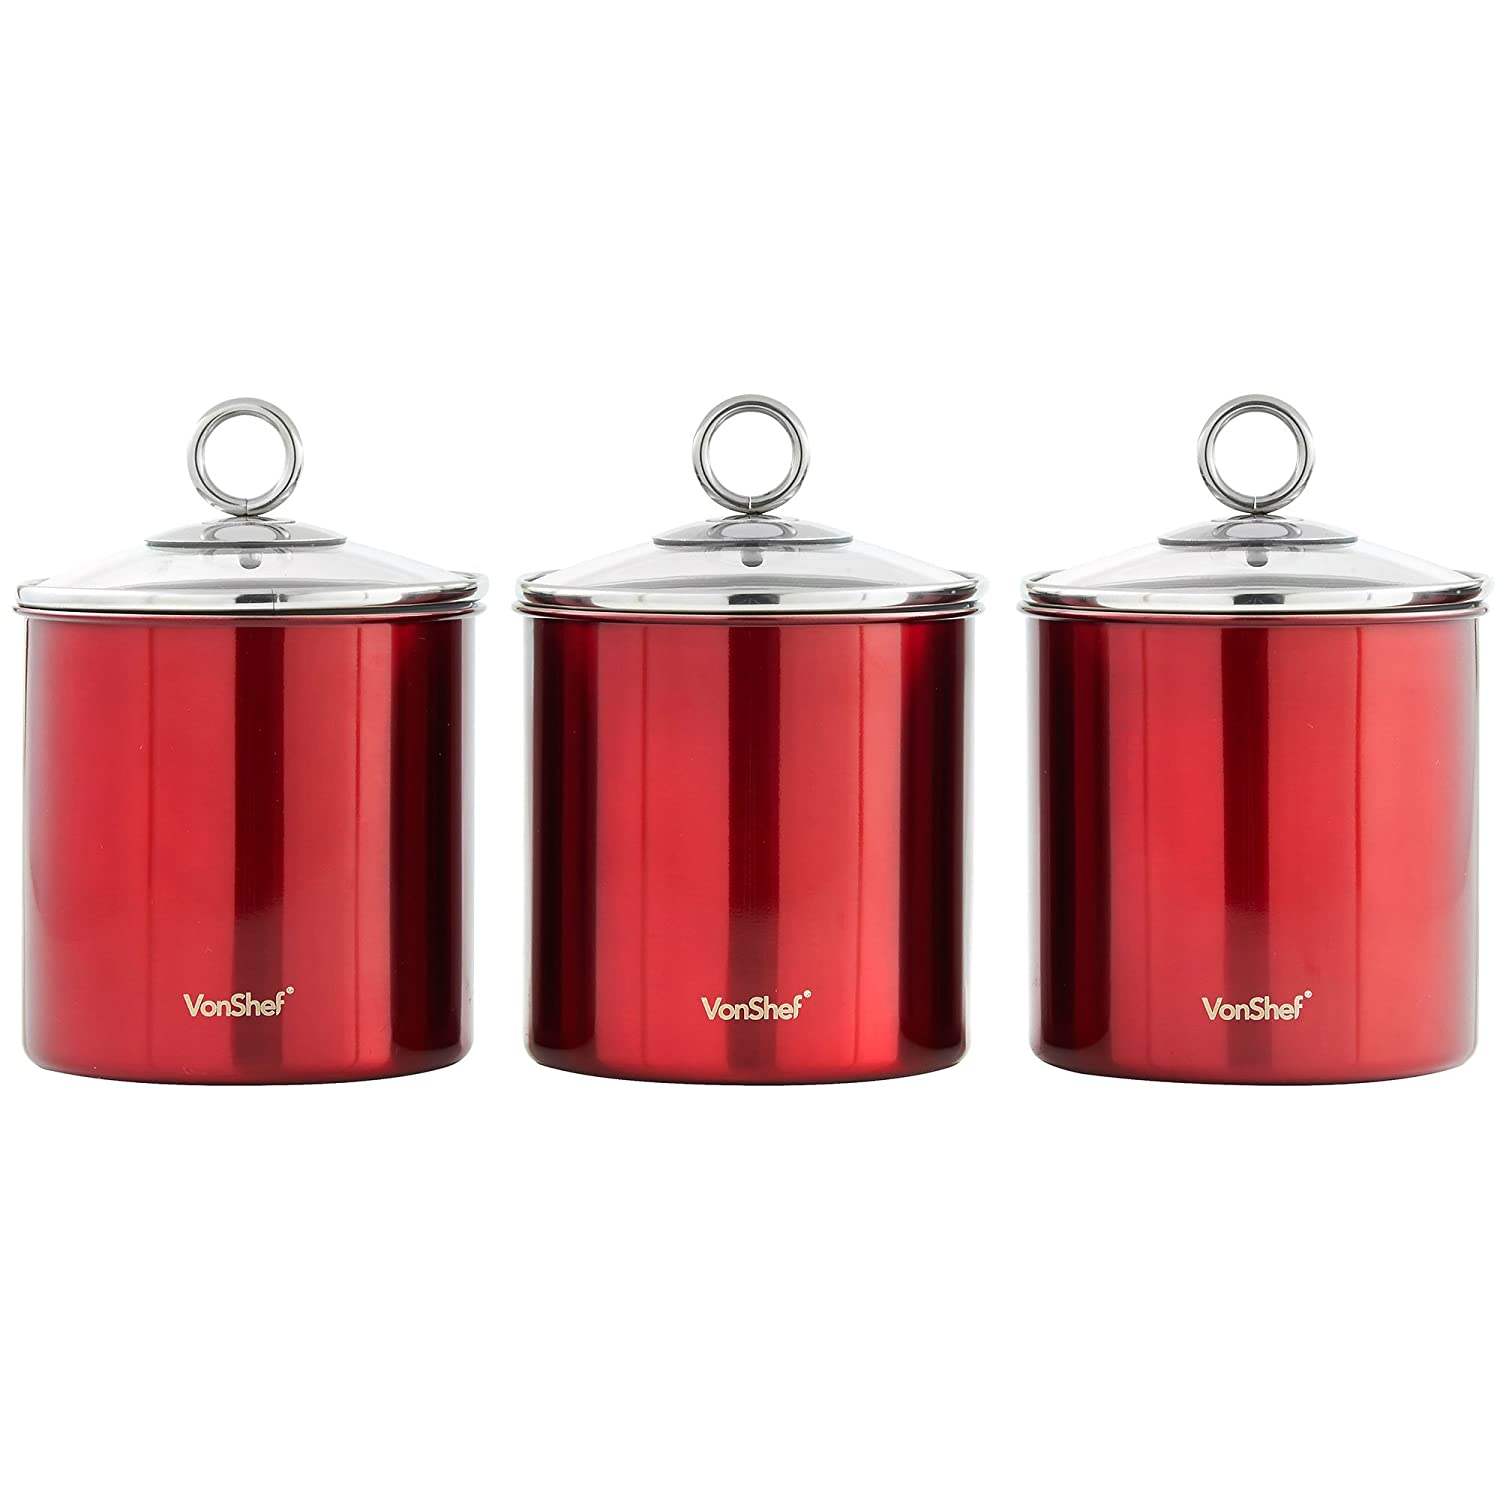 amazon com vonshef set of 3 tea coffee sugar canisters amazon com vonshef set of 3 tea coffee sugar canisters kitchen storage jars with glass lids red stainless steel kitchen dining